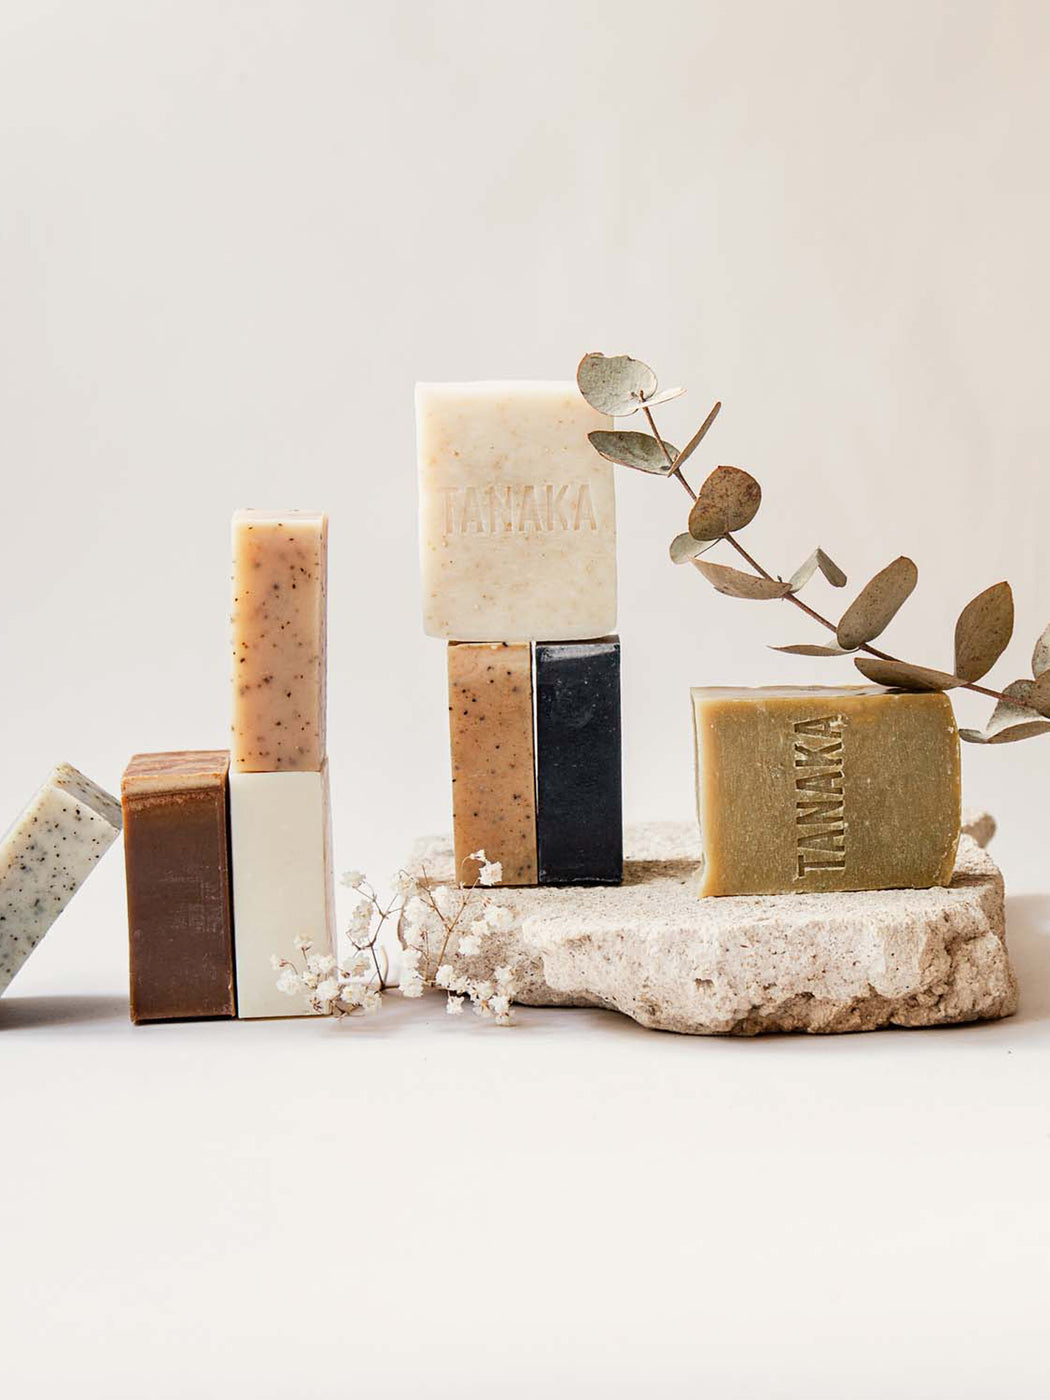 The Detoxyfying Bar - Handmade Natural Soap